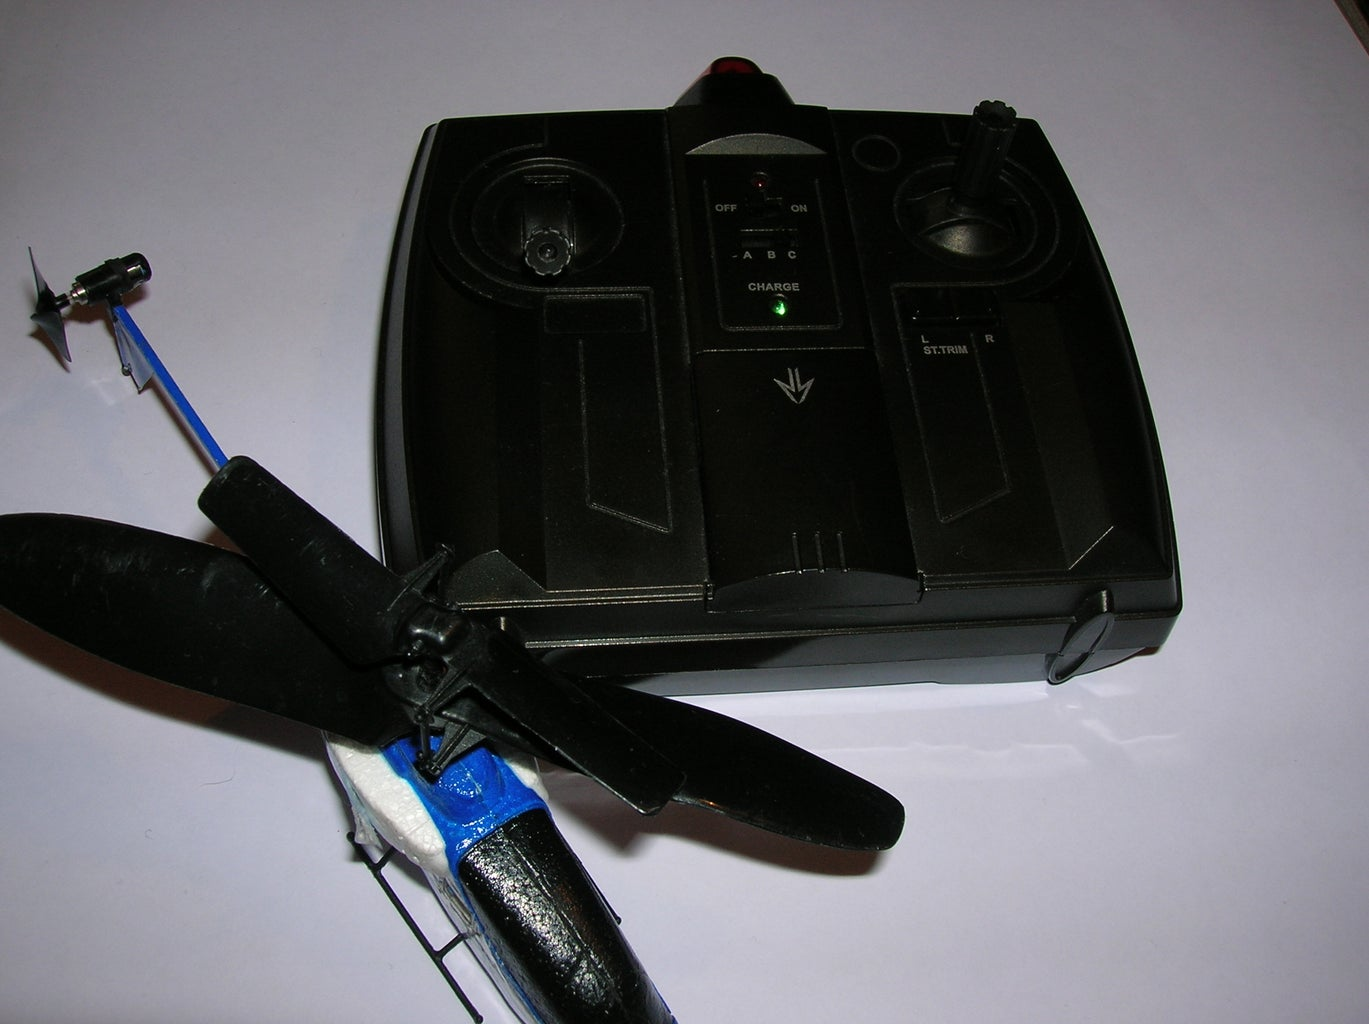 How to Fly a Toy Helicopter